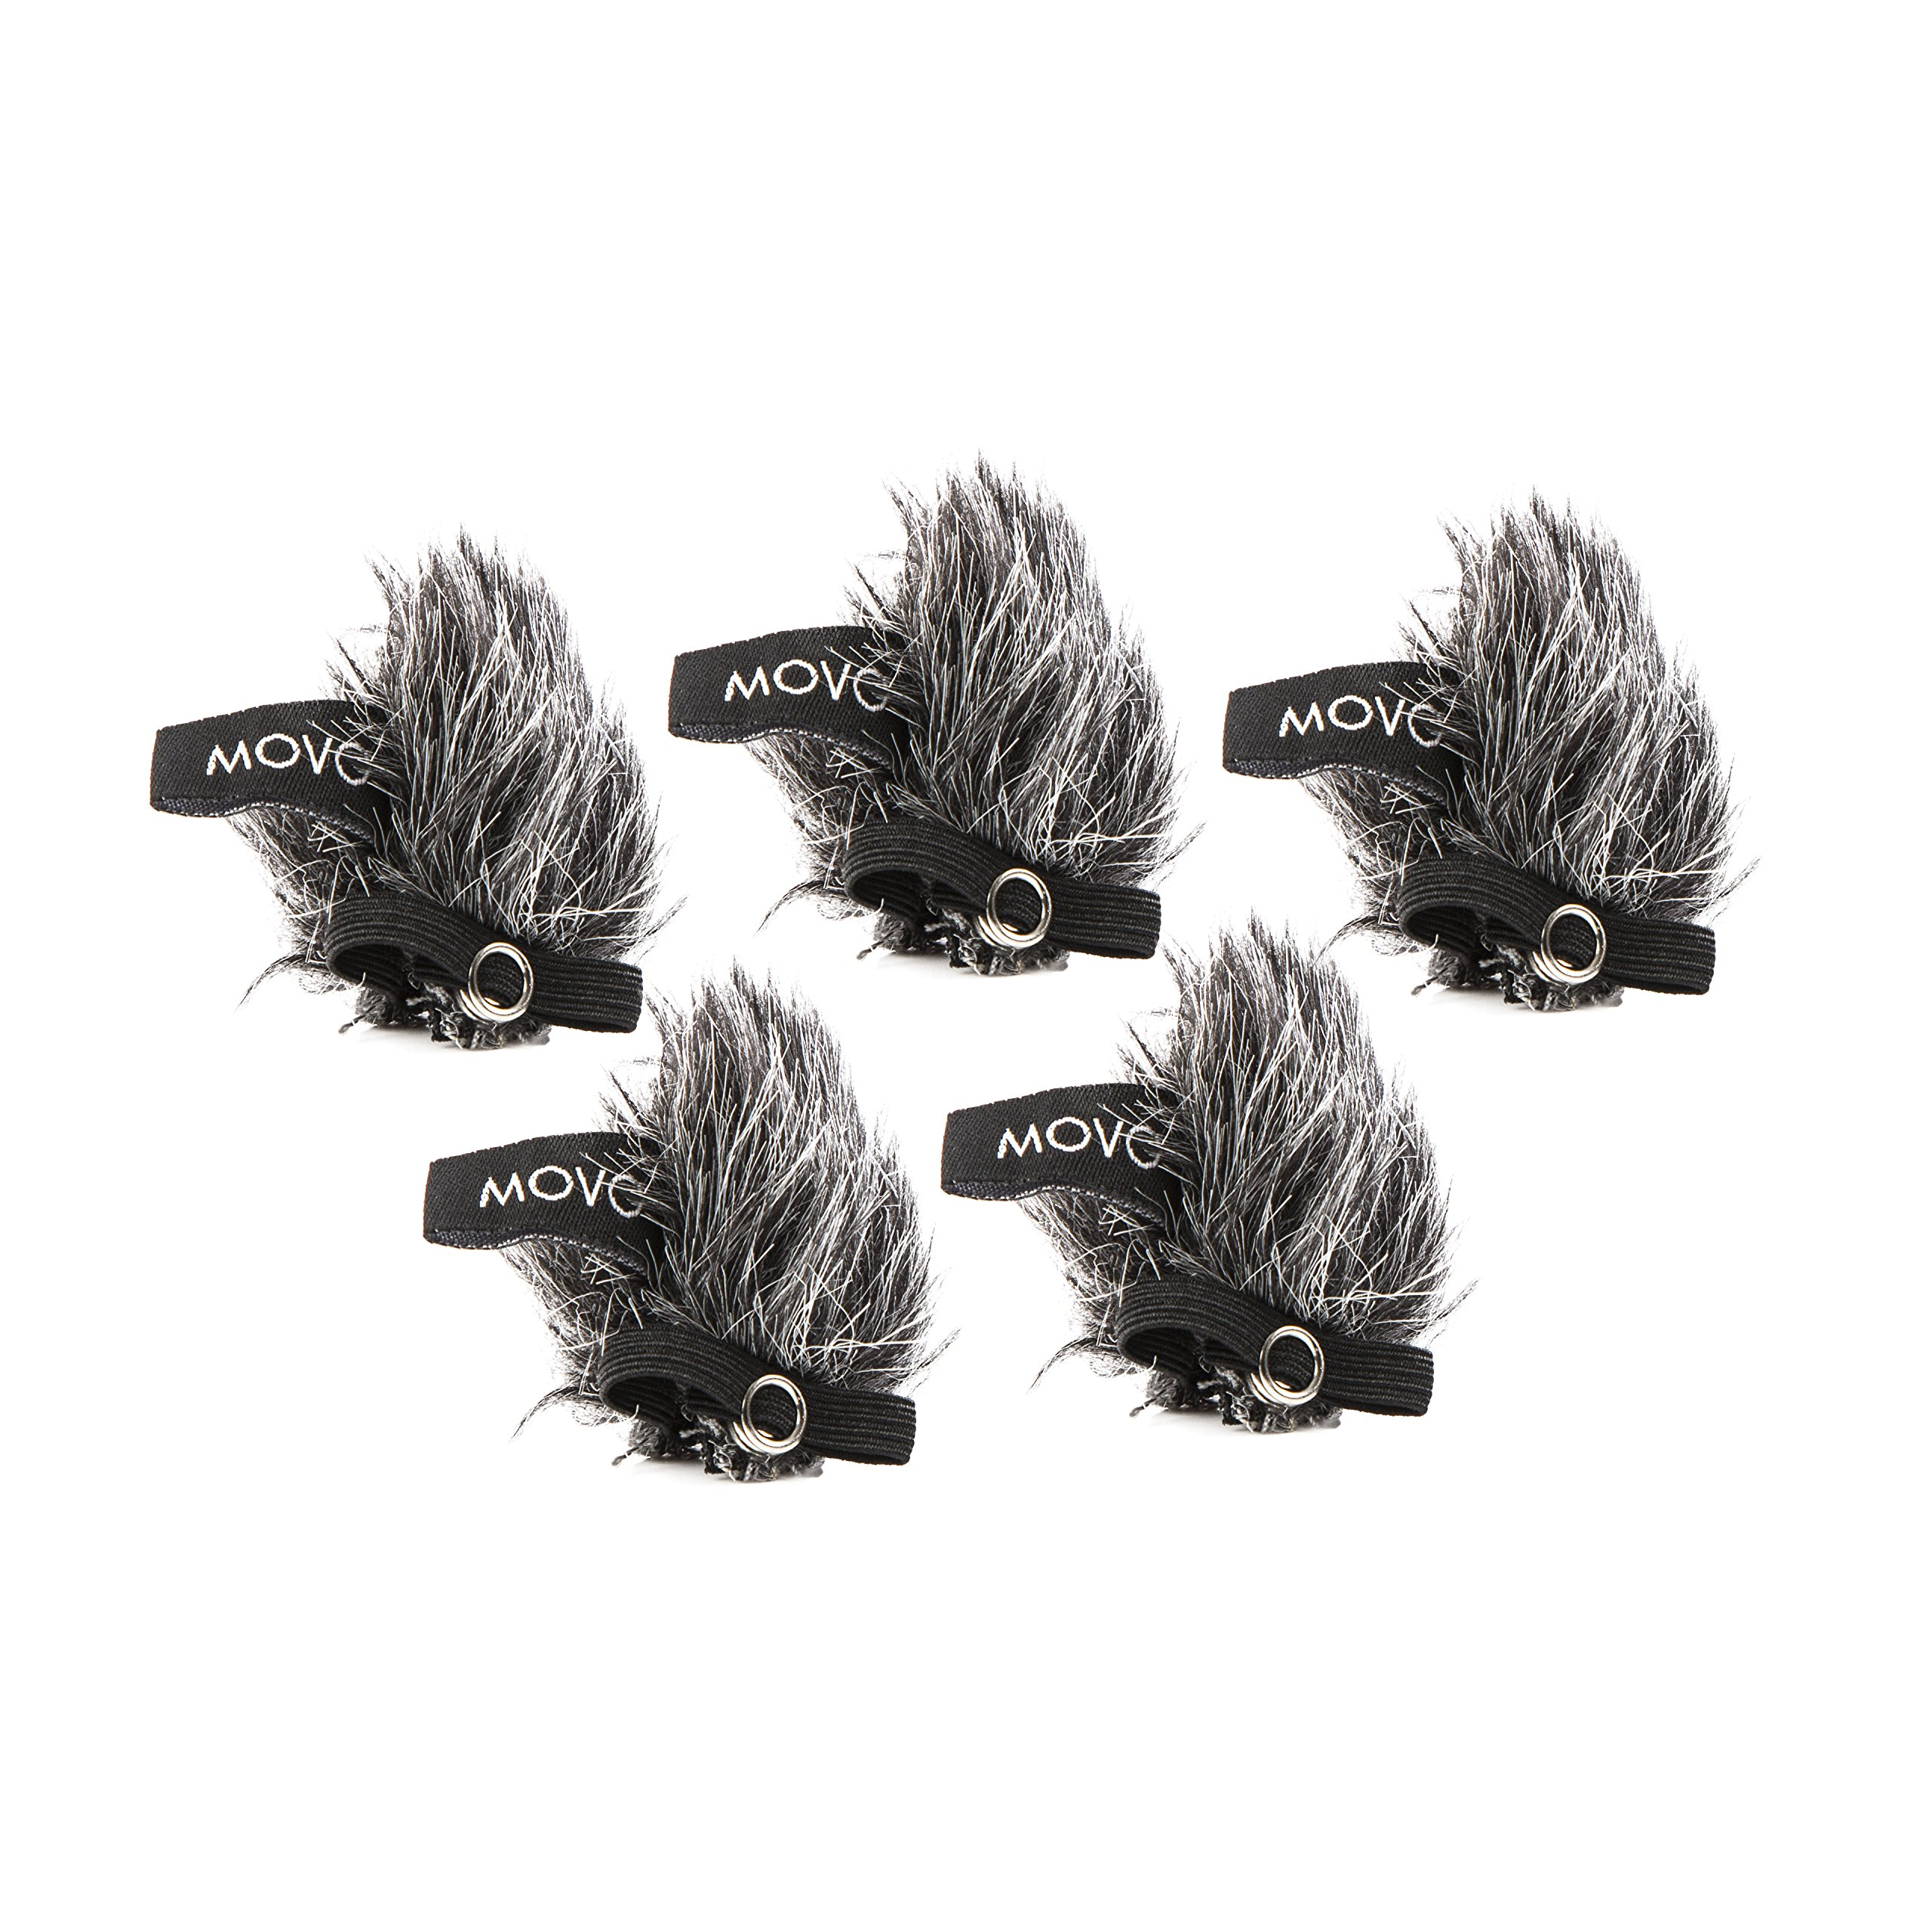 Movo WS-G10m Universal Furry Outdoor Microphone Windscreen Muff for All Lavalier Microphones Including, Shure, Rode, Sony, Audio-Technica and More! (5 PACK) - Dark Gray